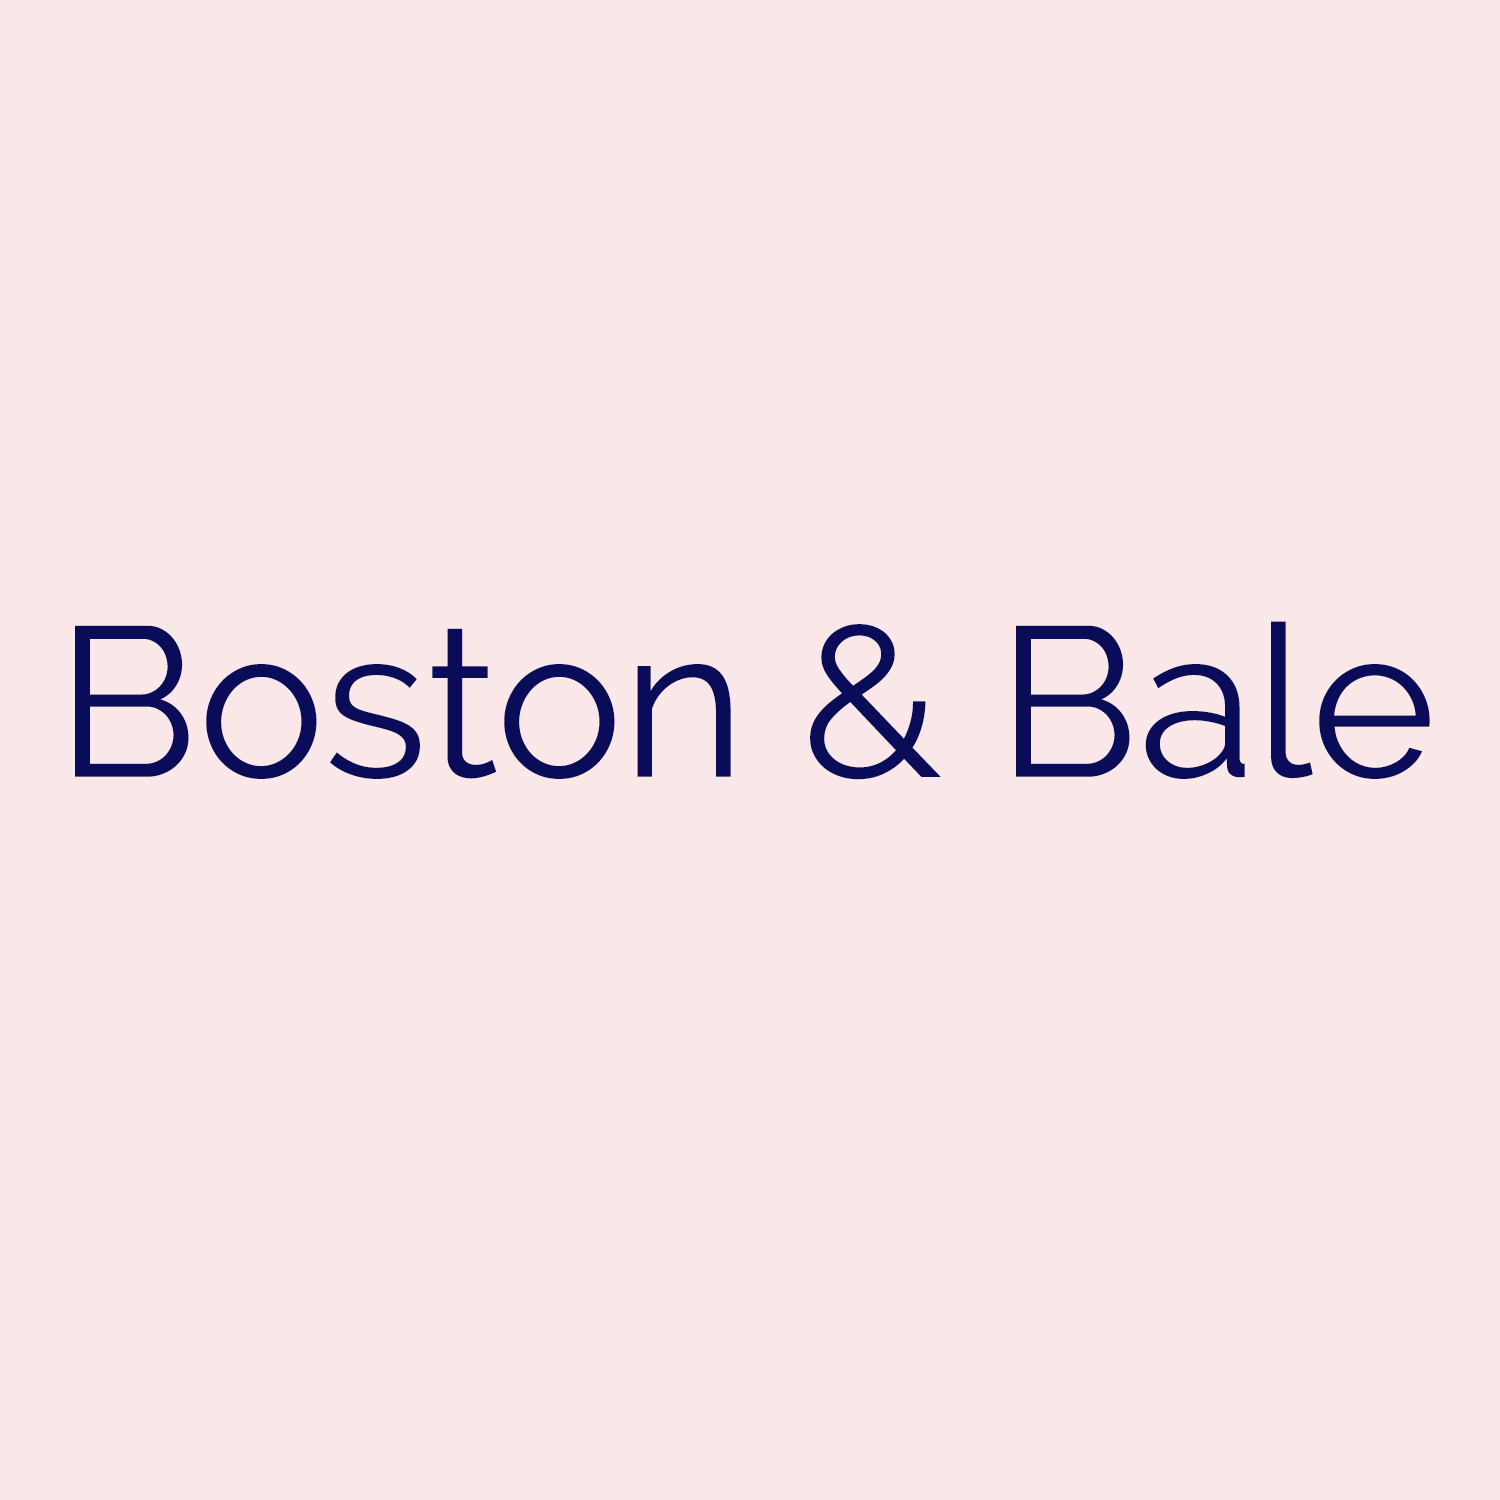 Boston & Bale | Curated Boston gifts